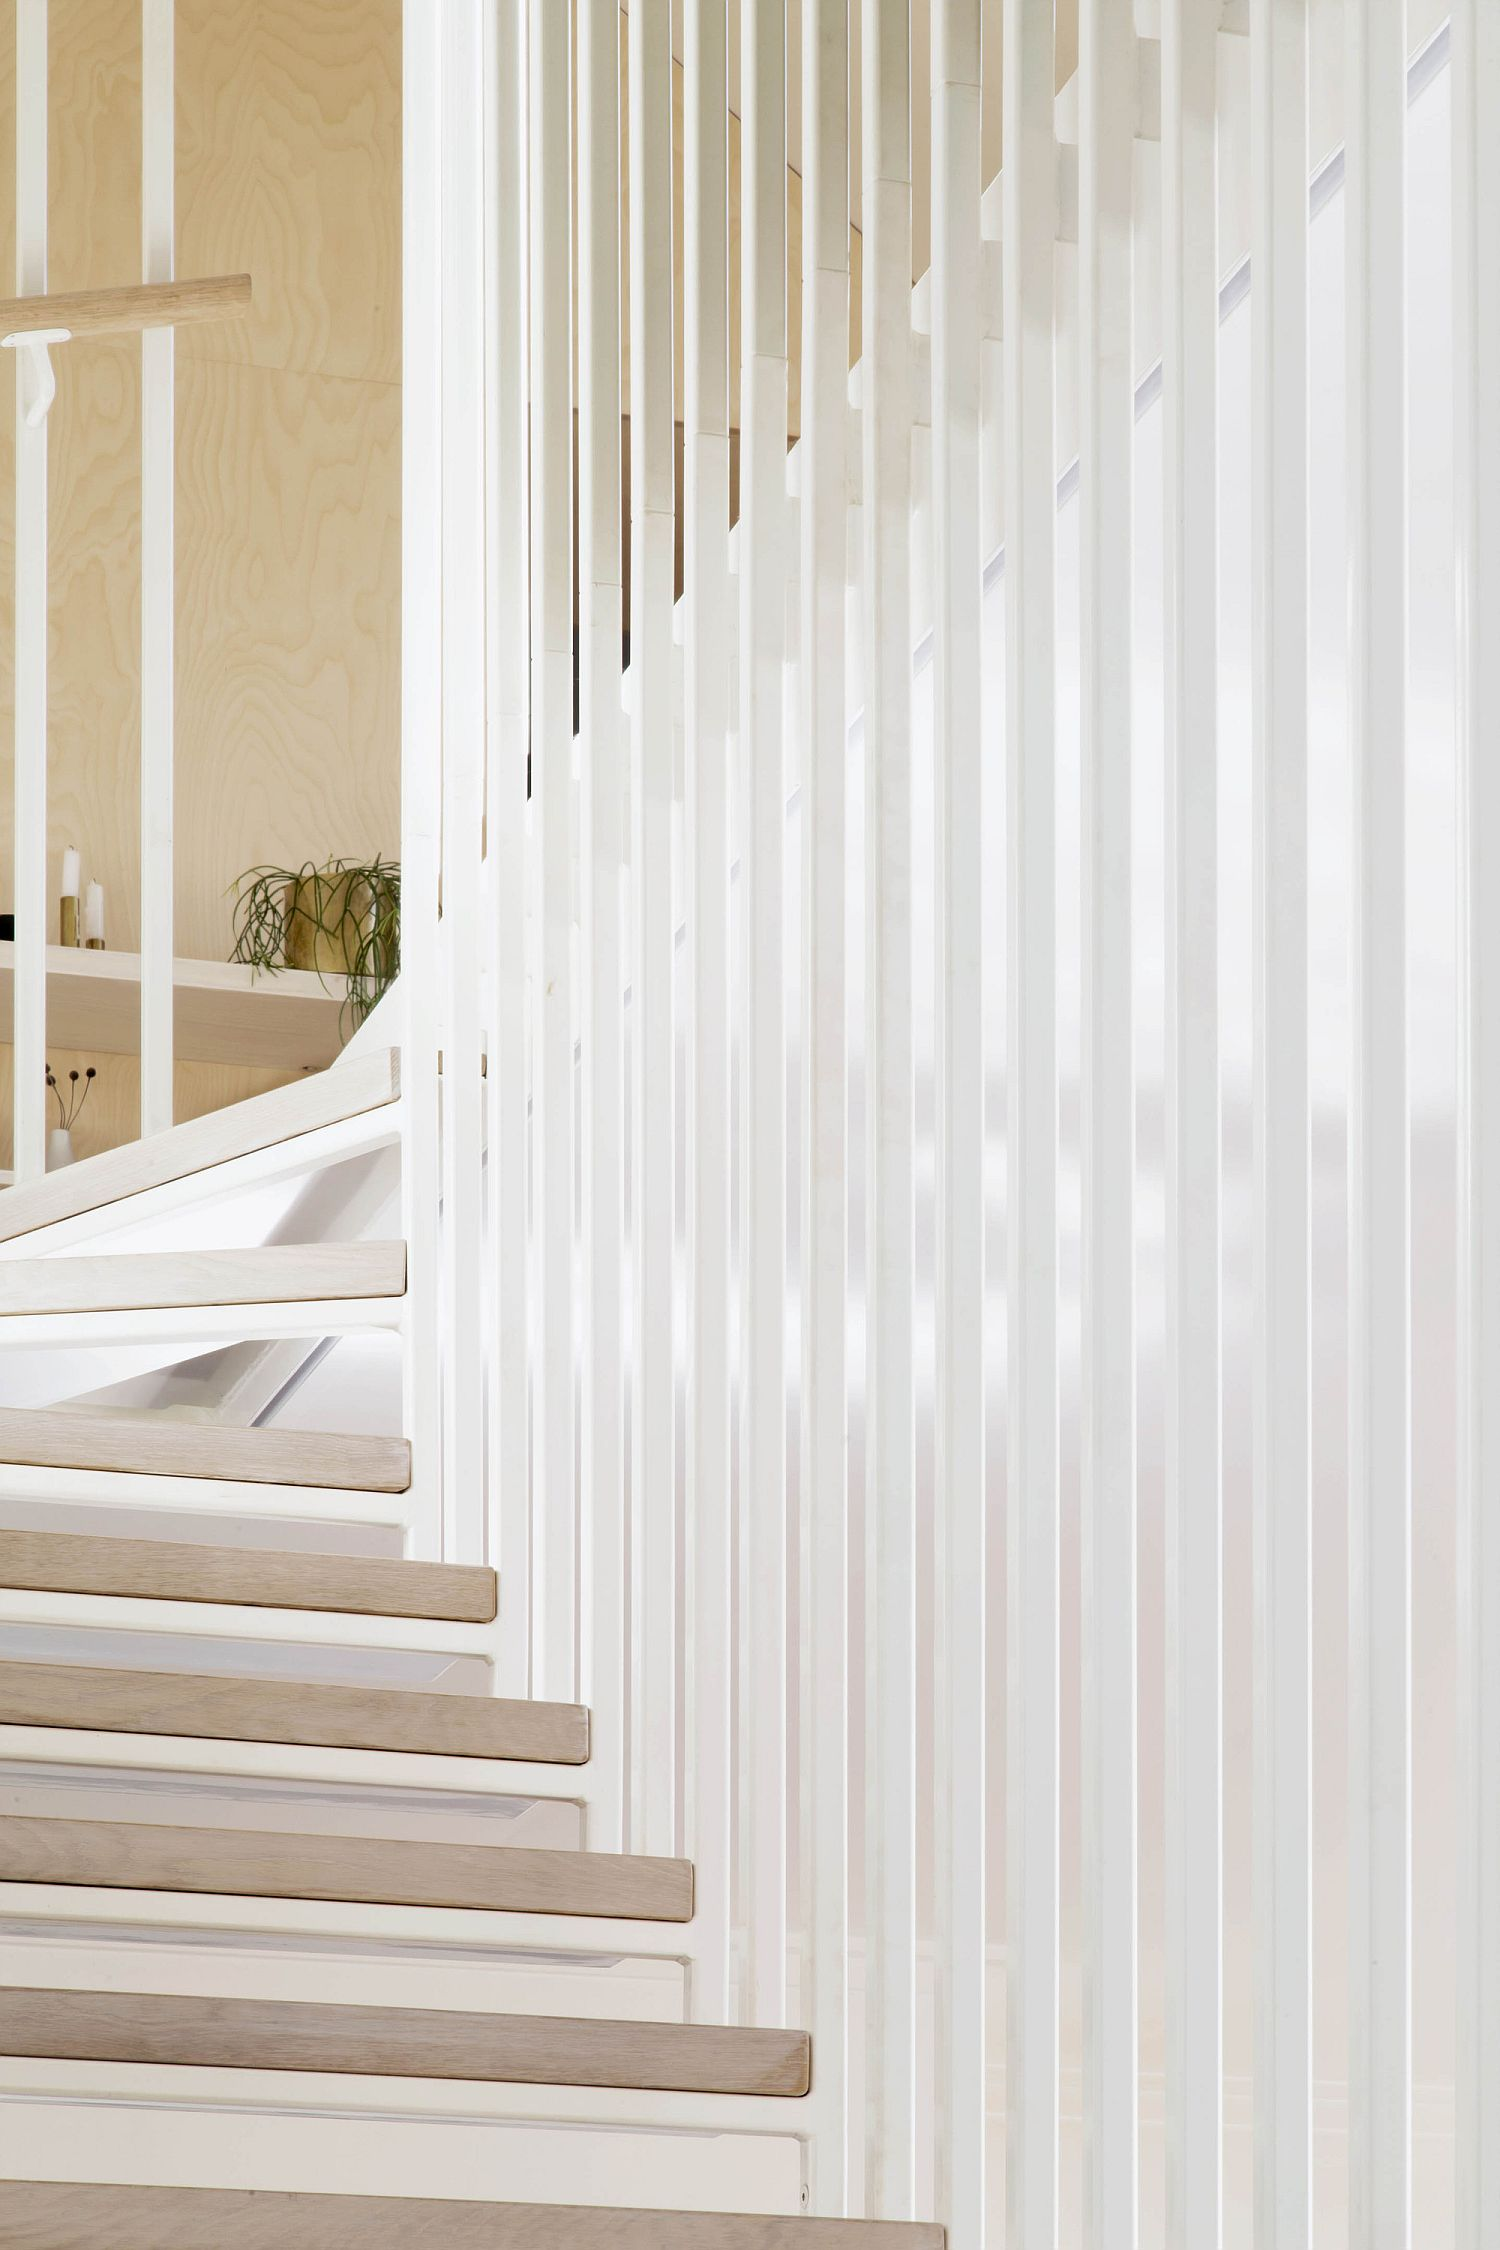 Custom staircase design of the Hideaway House